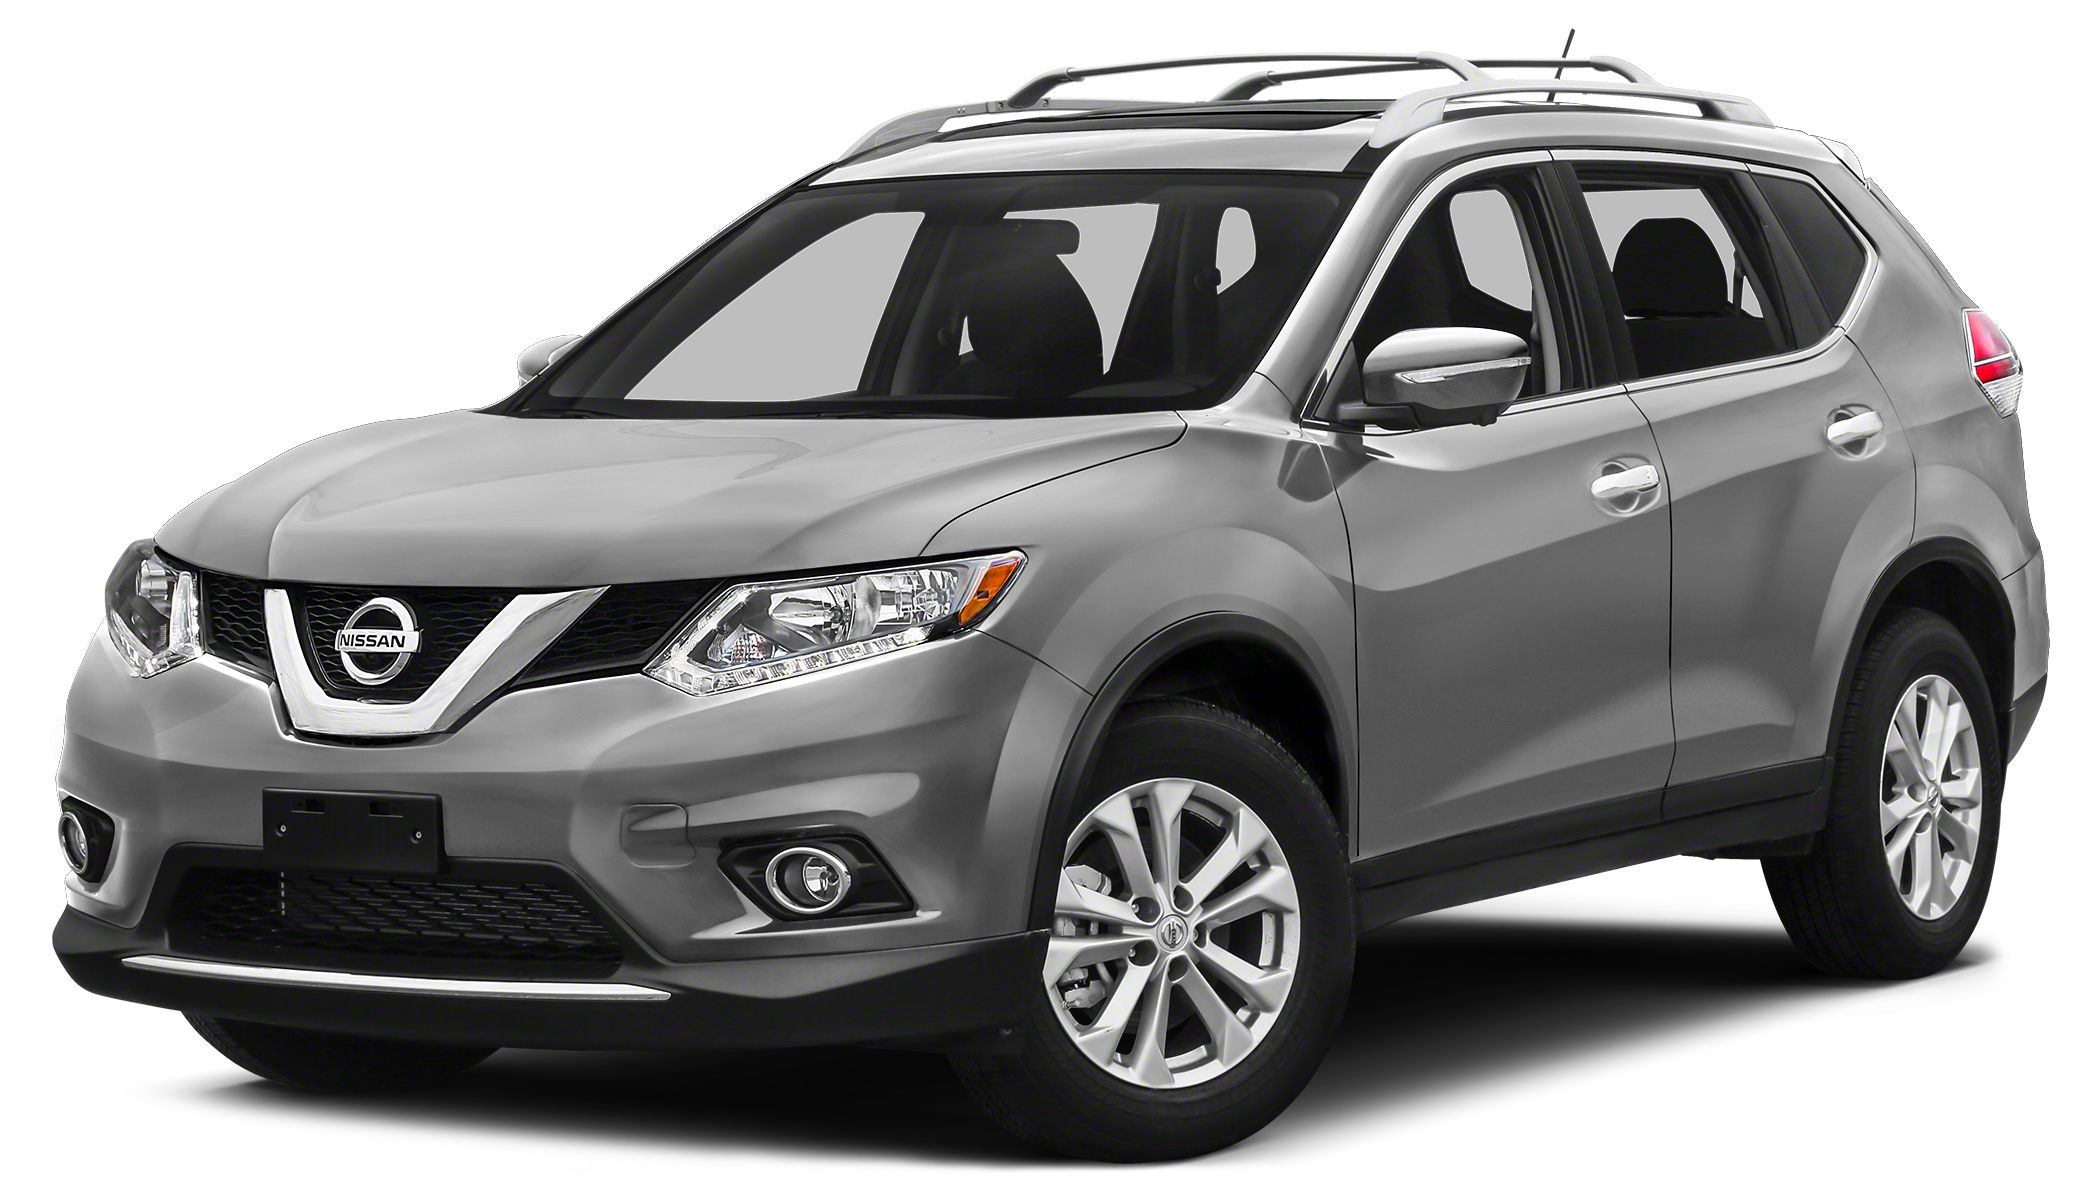 2014 Nissan Rogue SL Grab a bargain on this 2014 Nissan Rogue SL before someone else takes it home